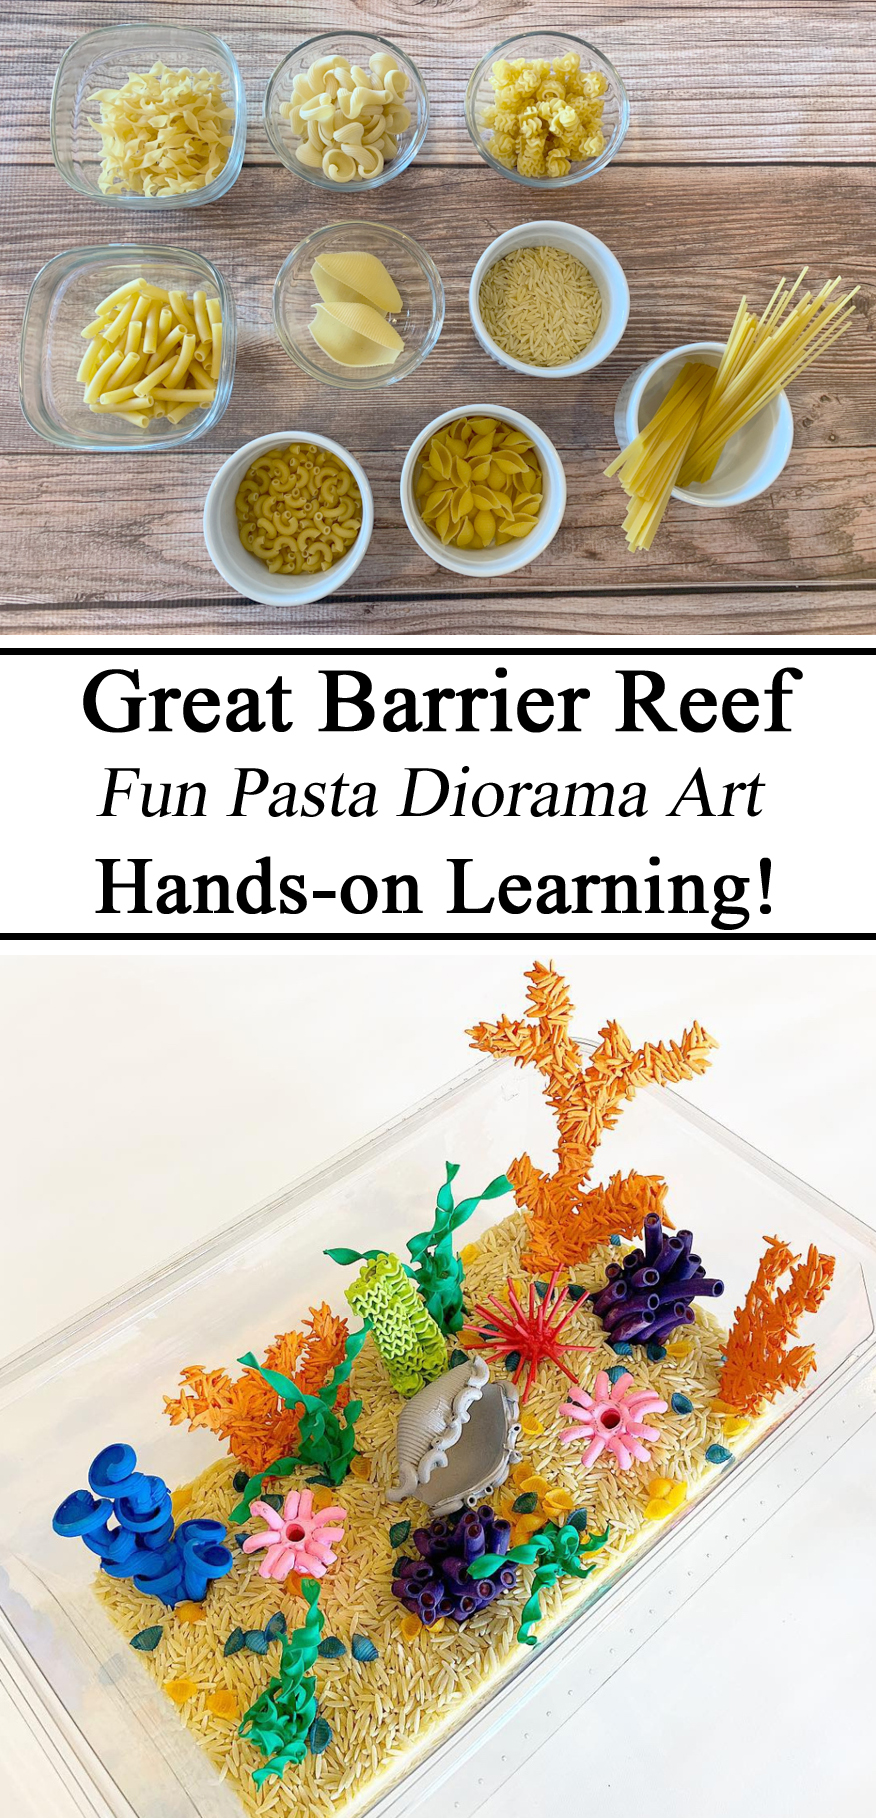 Homeschool, Homeschooling, Montessori, Activities, Diorama, Pasta, Great Barrier Reef, Scuba Diving, Artistic, Model, Hands on Learning, DIY, Pasta Art, Arts & Crafts, Activities for Kids, Ocean, Coral Reef, Learning, Educational, Creative